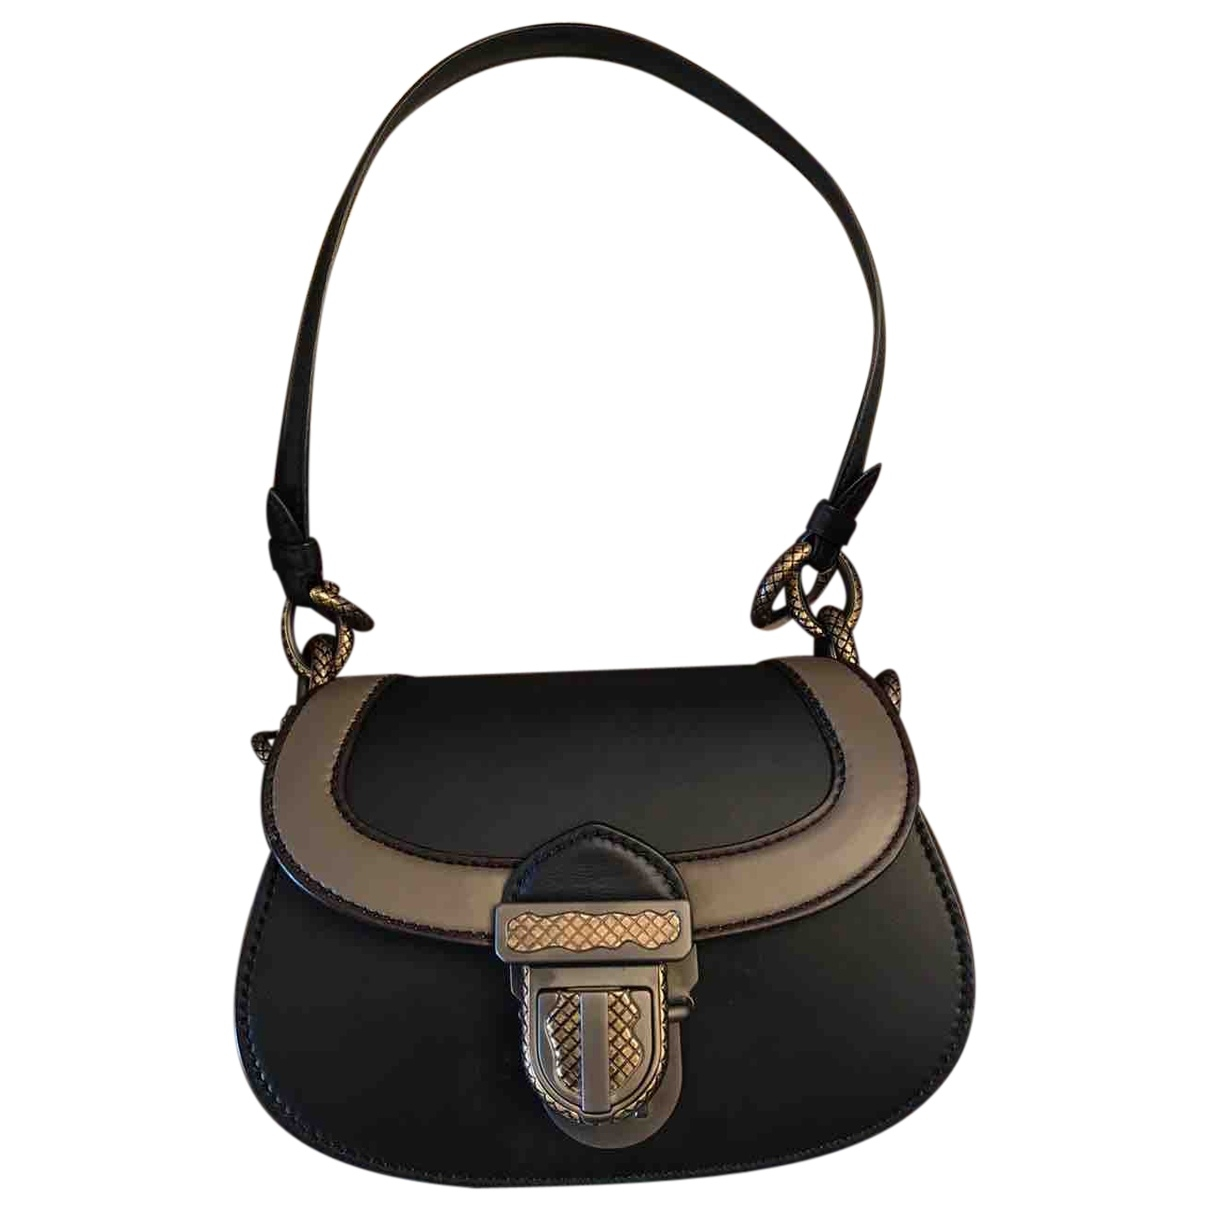 Bottega Veneta Piazza Black Leather handbag for Women \N